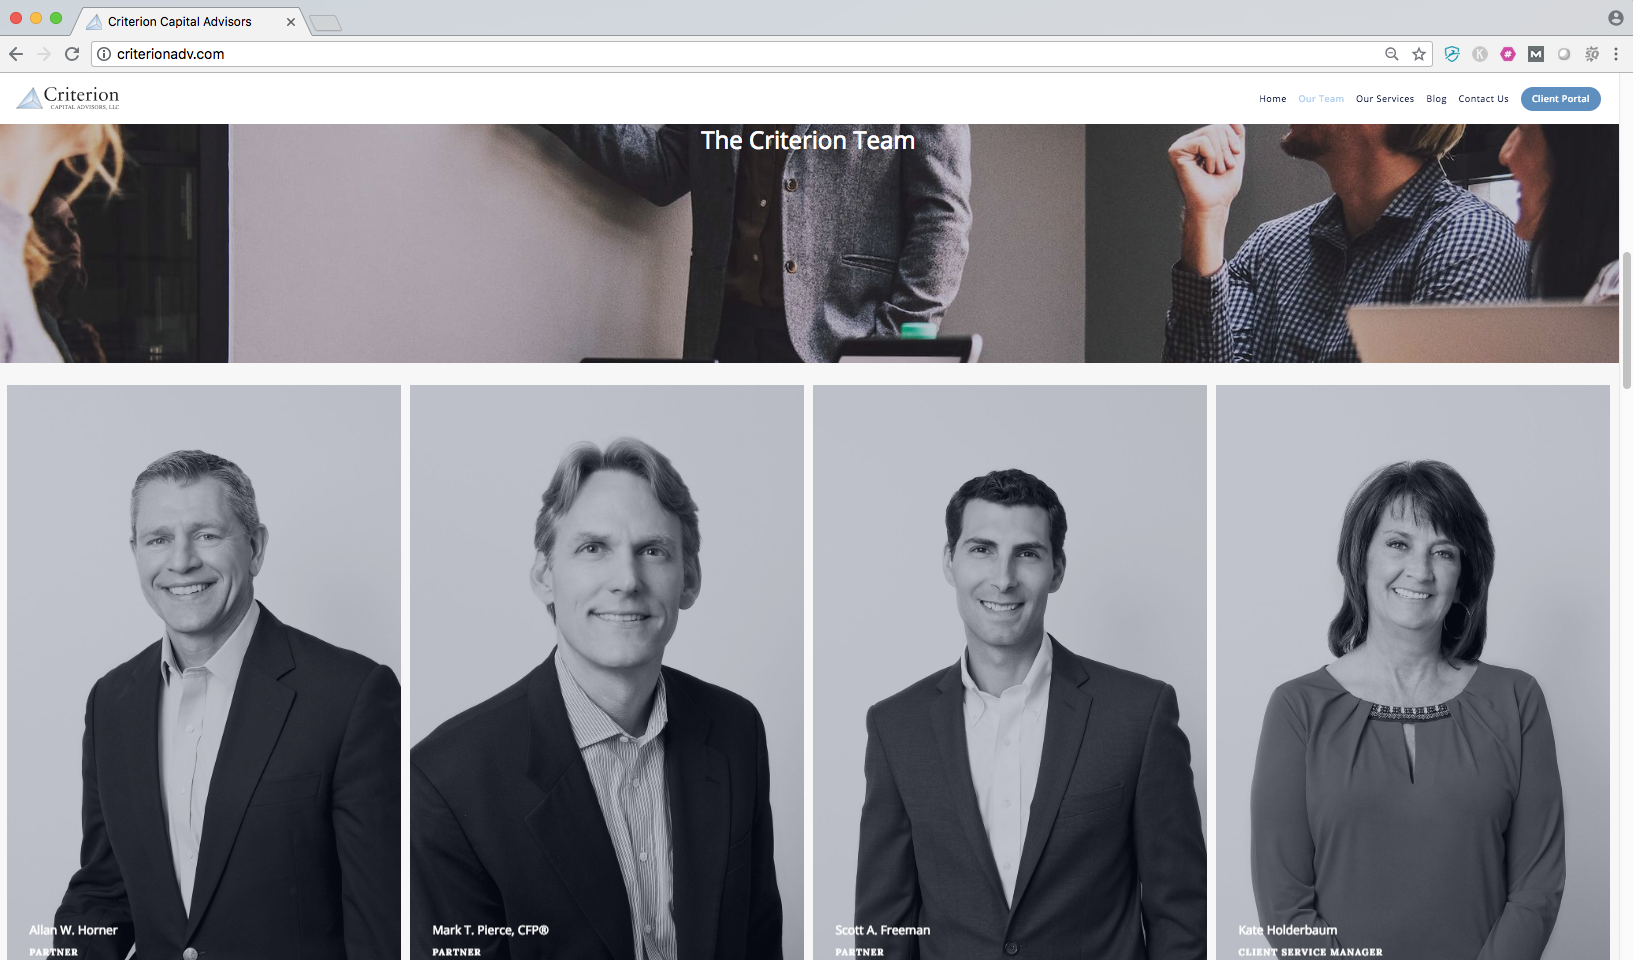 about us page on financial advisor website